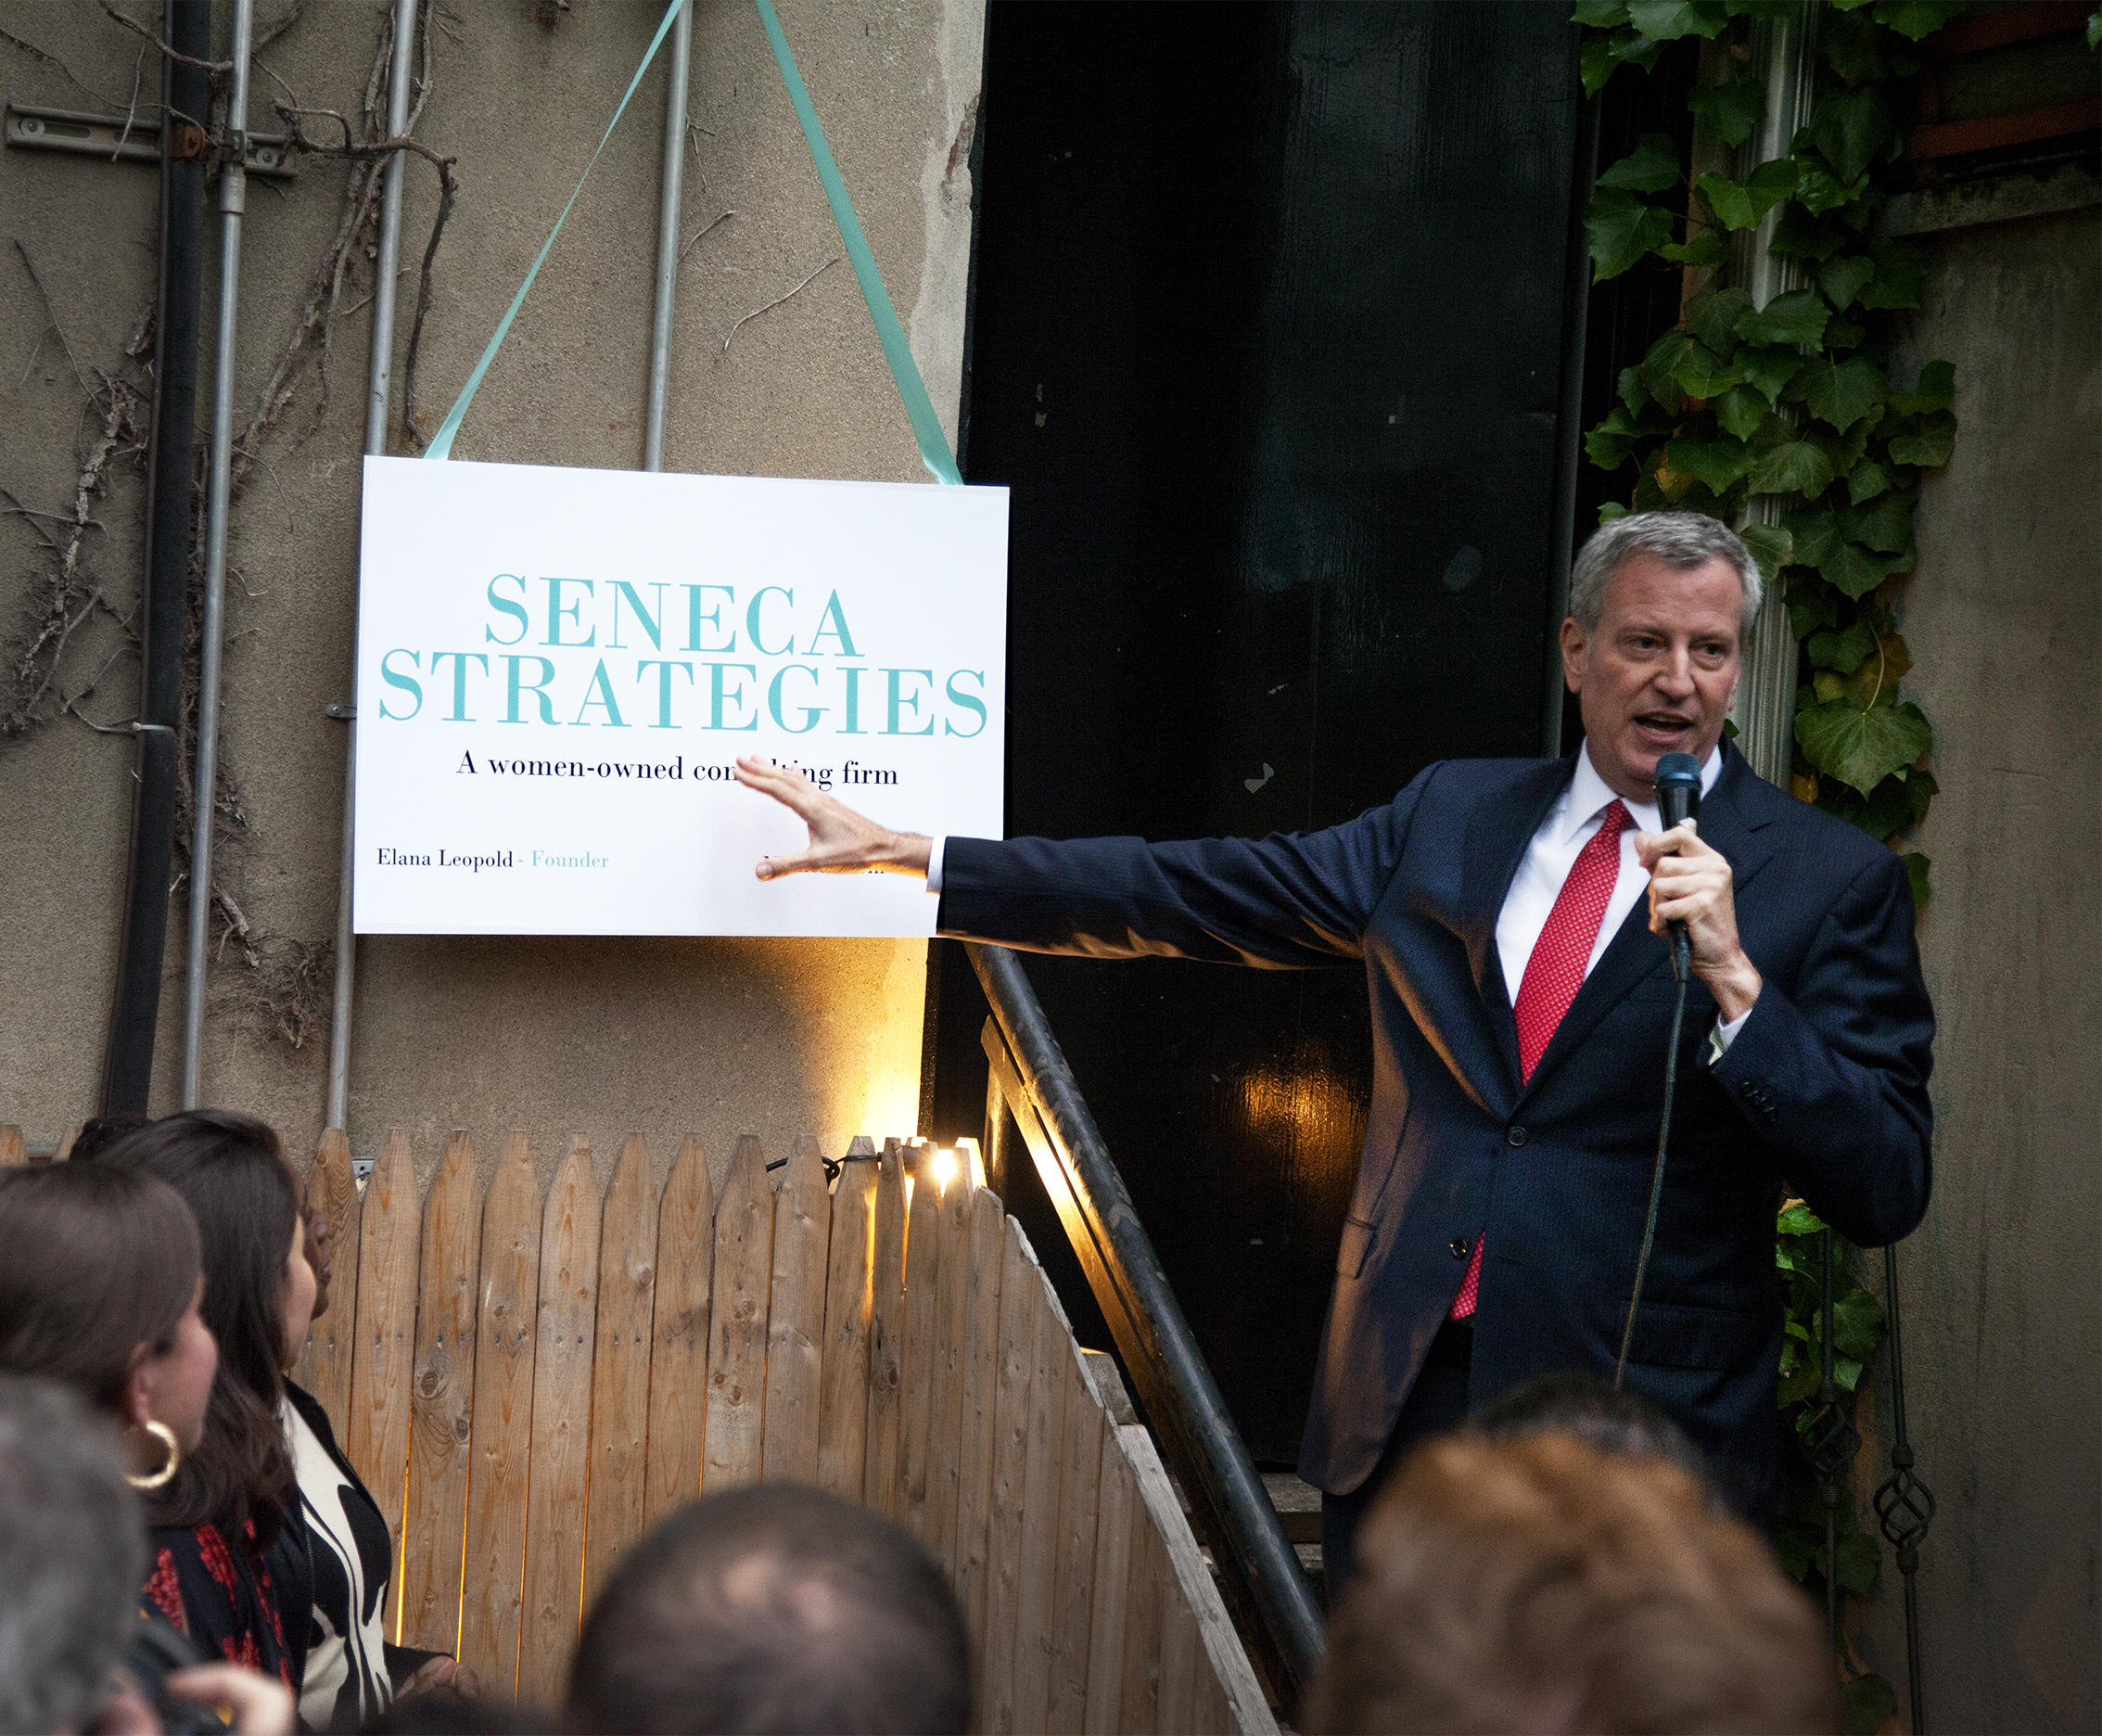 Copy of Mayor Bill de Blasio lends his support to Monica Klein & Elana Leopold of Seneca Strategies